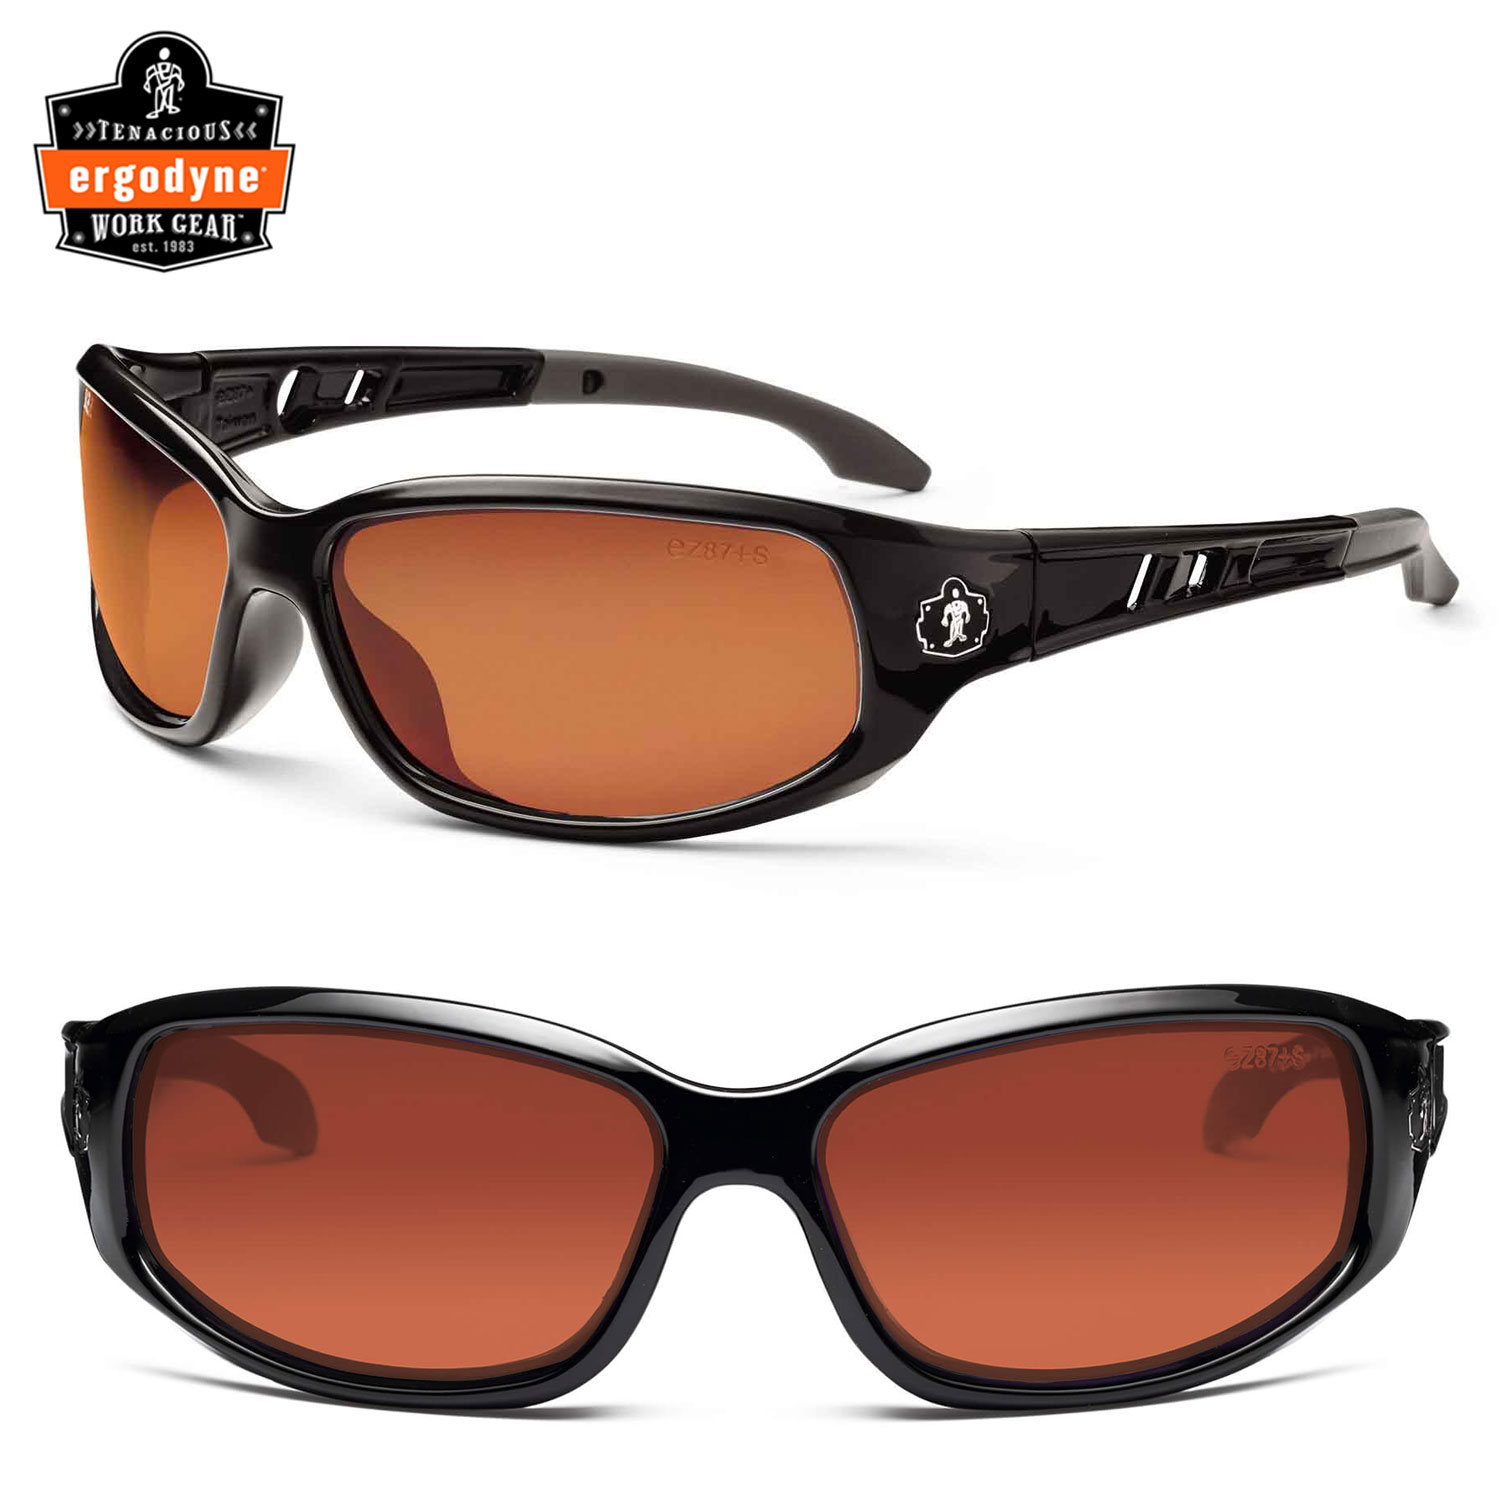 Skullerz Valkyrie Safety glasses with Smoke Polarized Lens and Matte Gray Frame